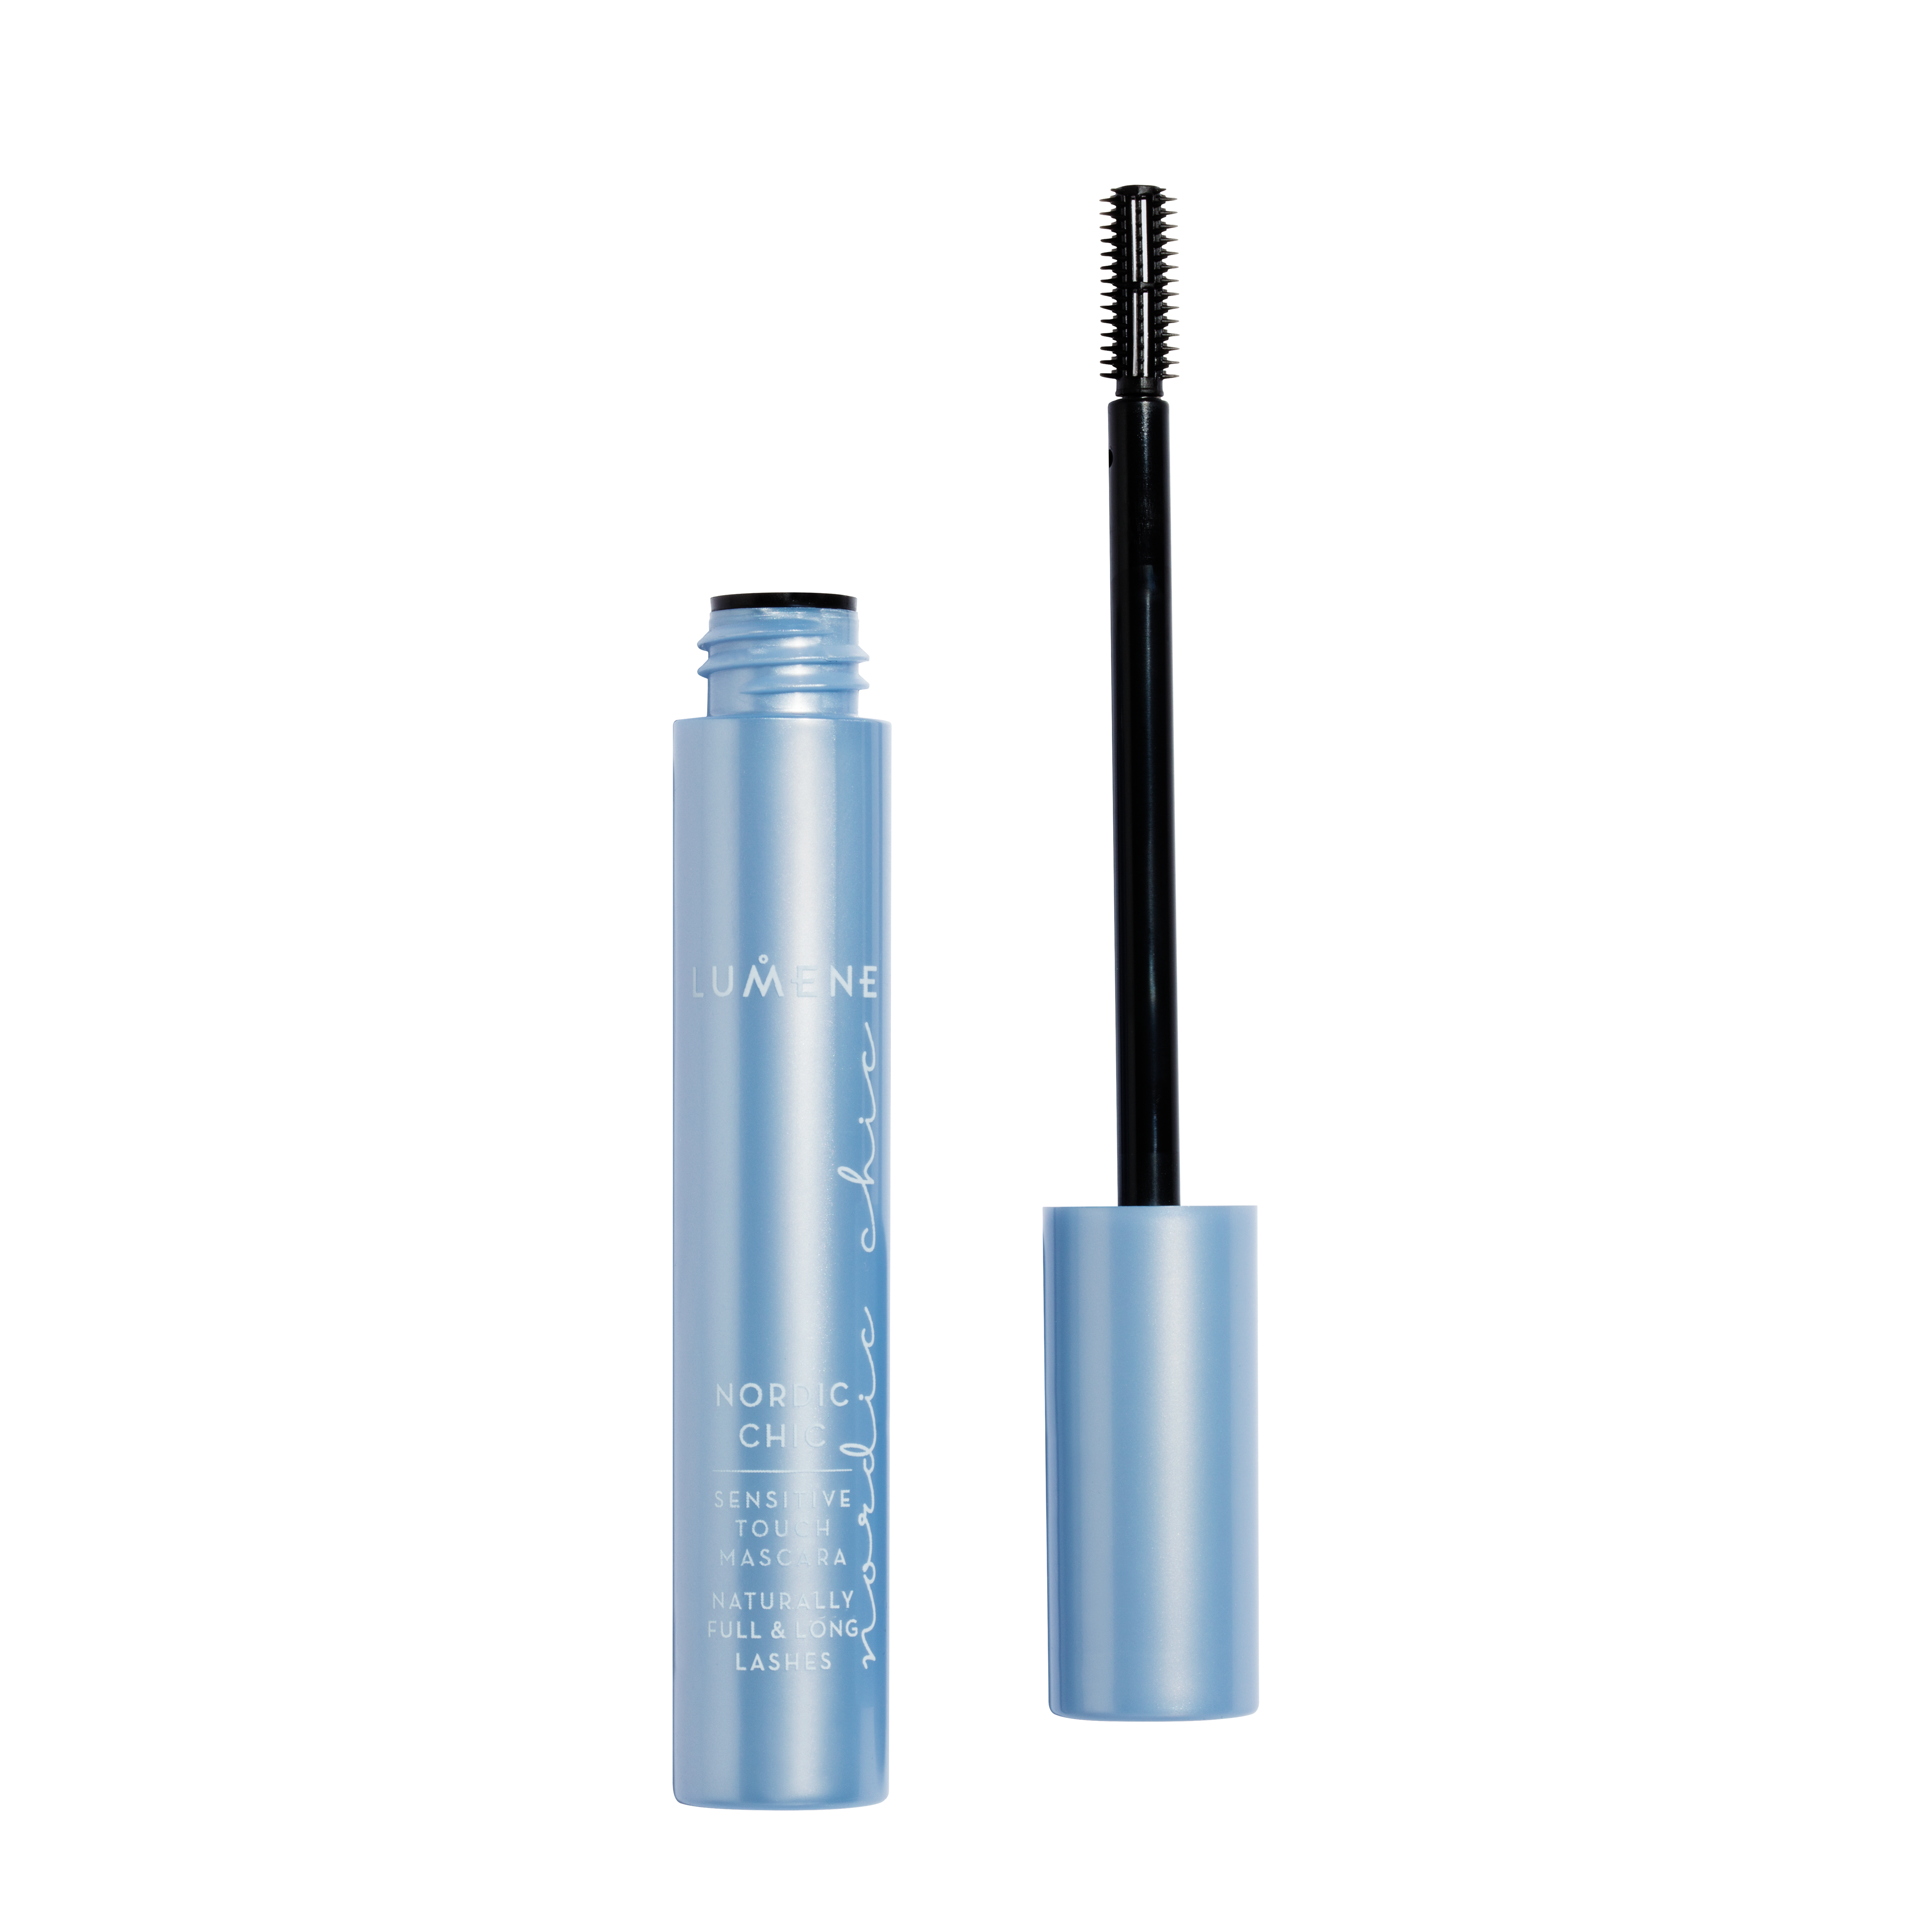 Nordic Chic Sensitive Touch Mascara Black